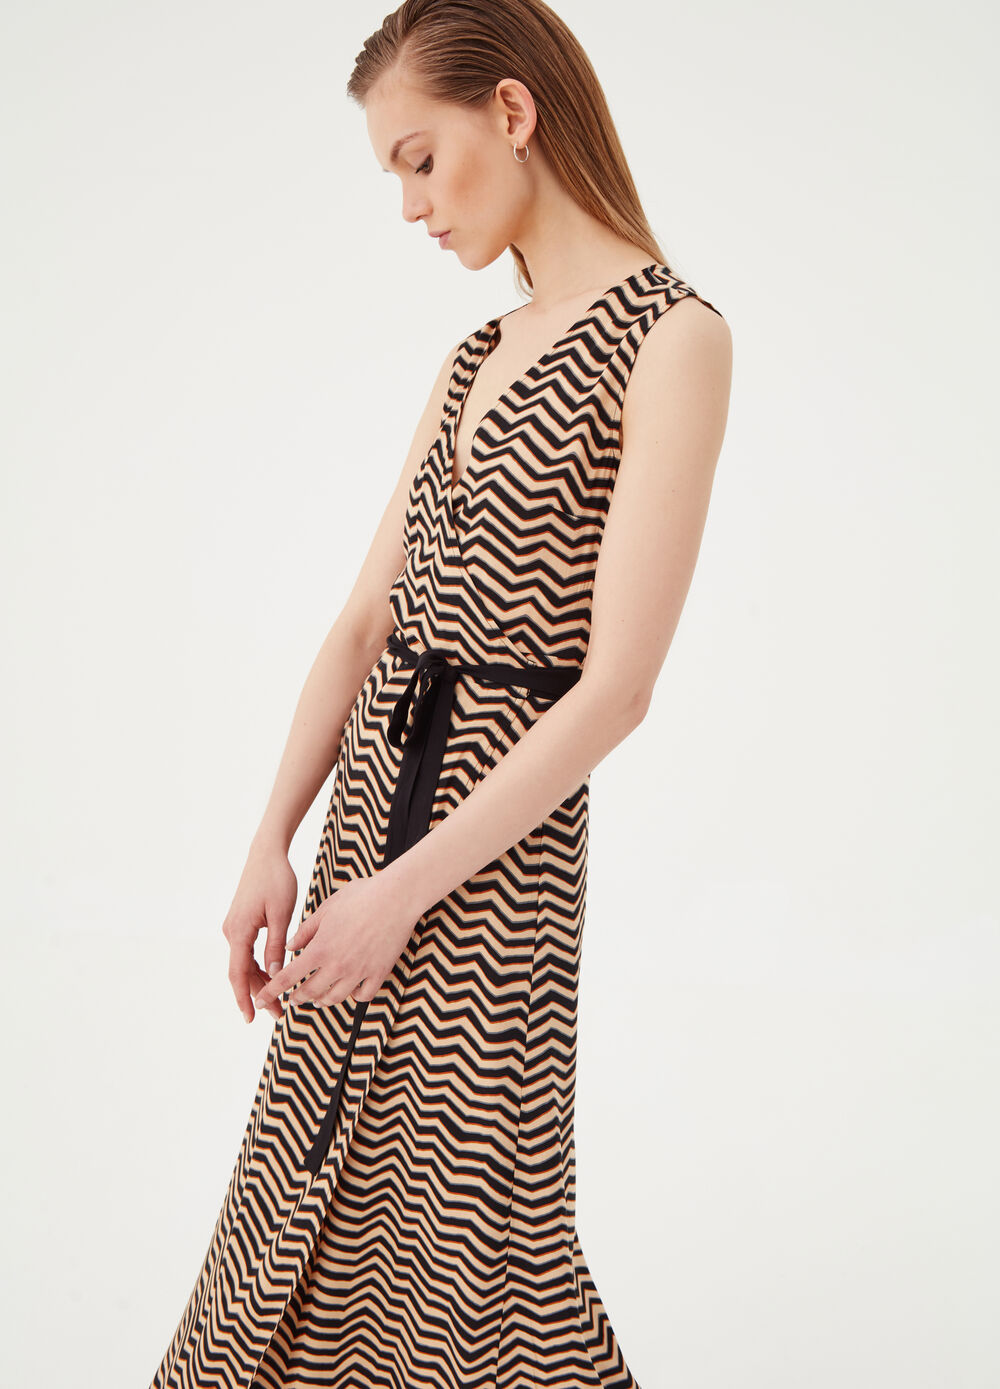 Sleeveless dress with geometric pattern